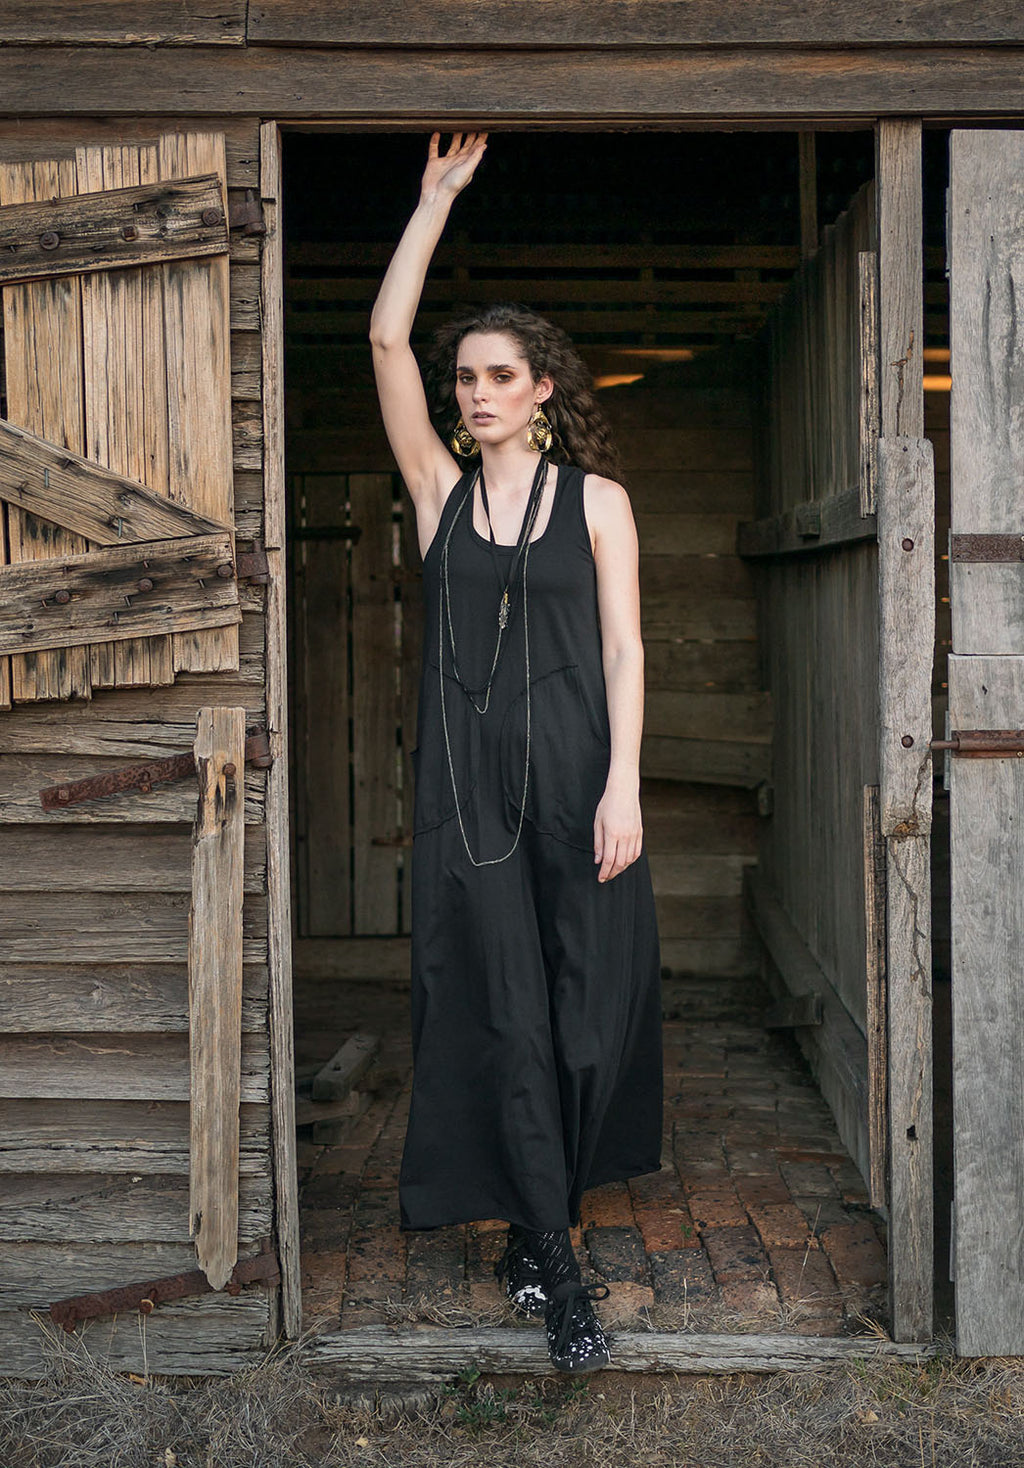 organic cotton clothing, organic cotton fashion, organic australian made fashion, ethical boutique, 100% australian made